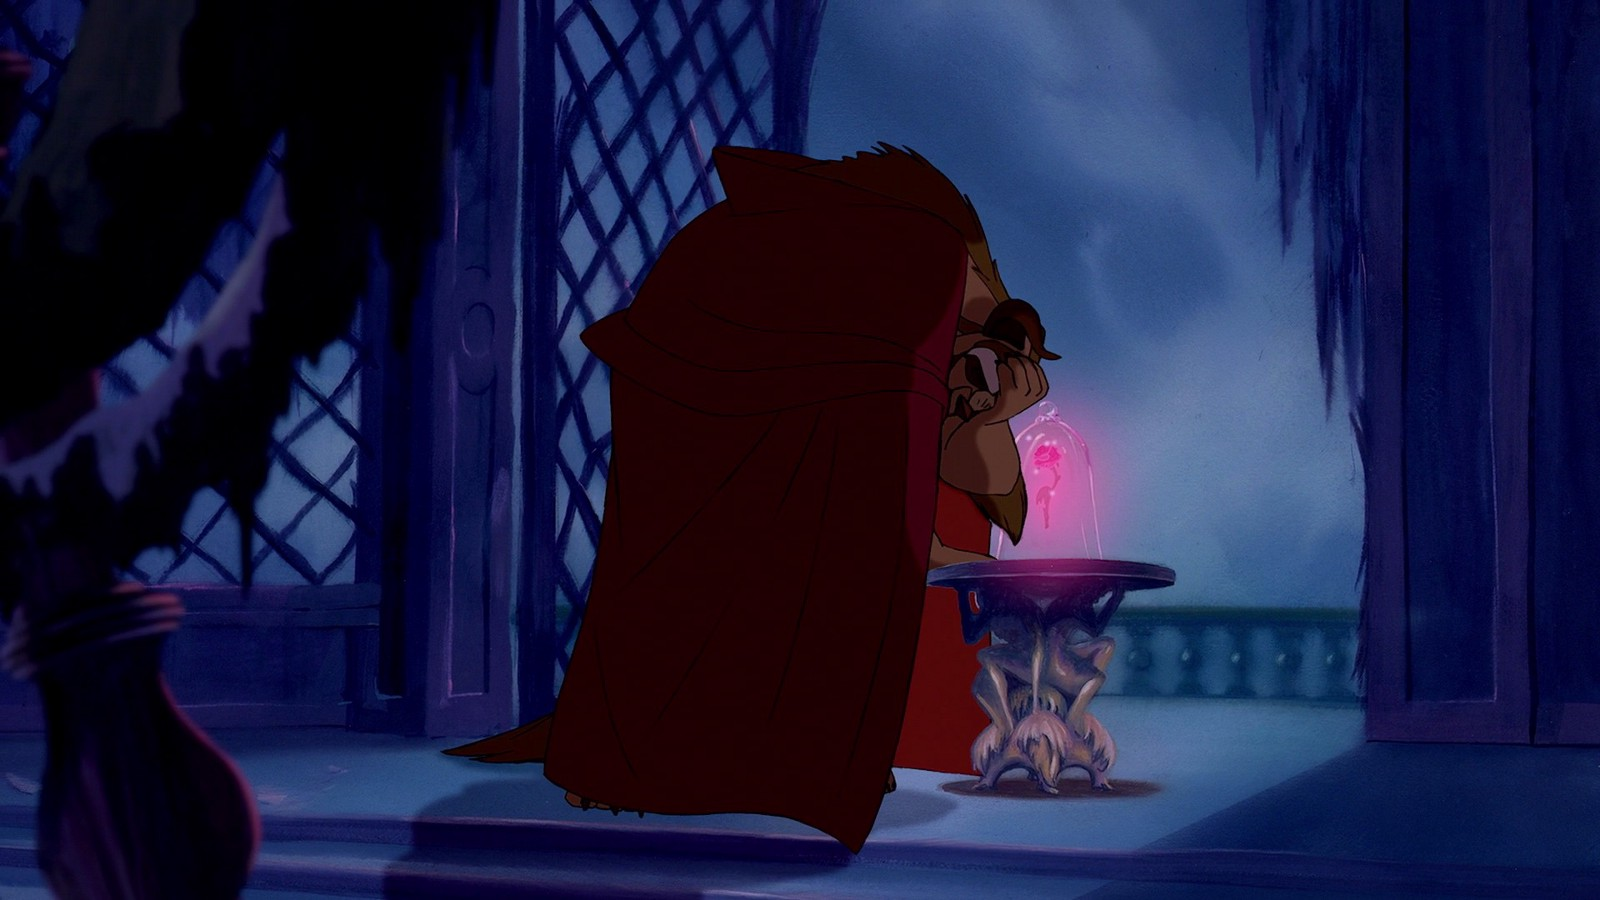 The Beast and his enchanted rose in Disney's Beauty and the Beast (1991).